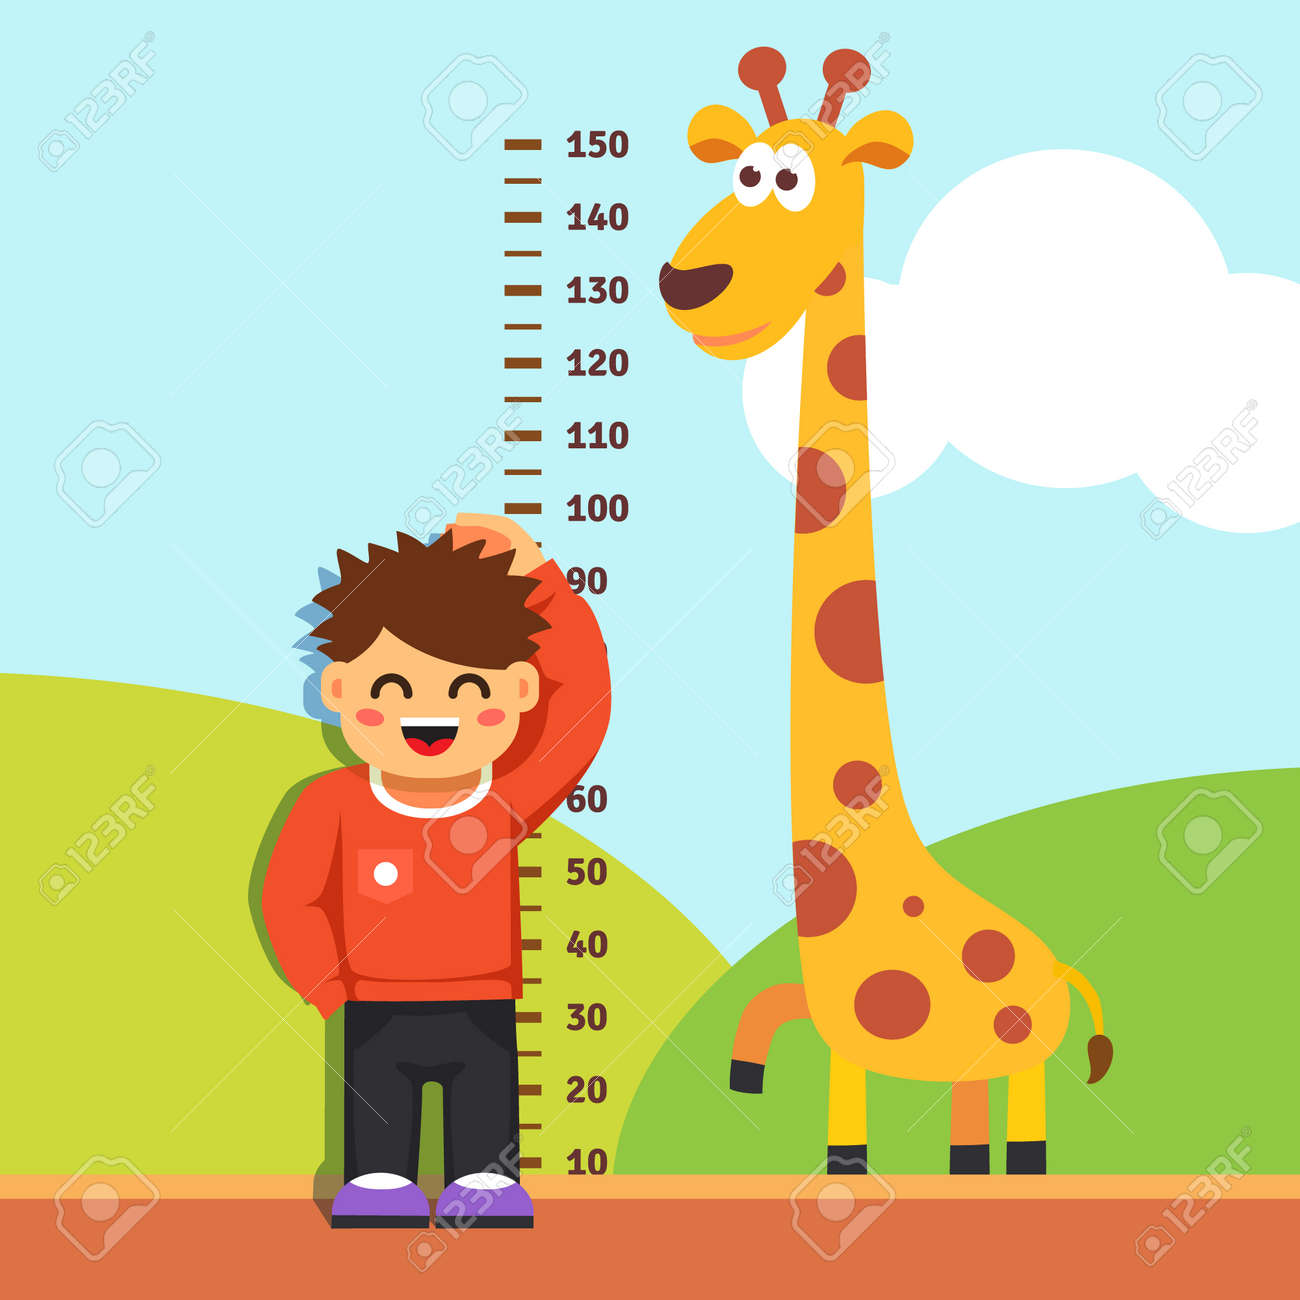 boy kid is measuring his height with painted graduations on the